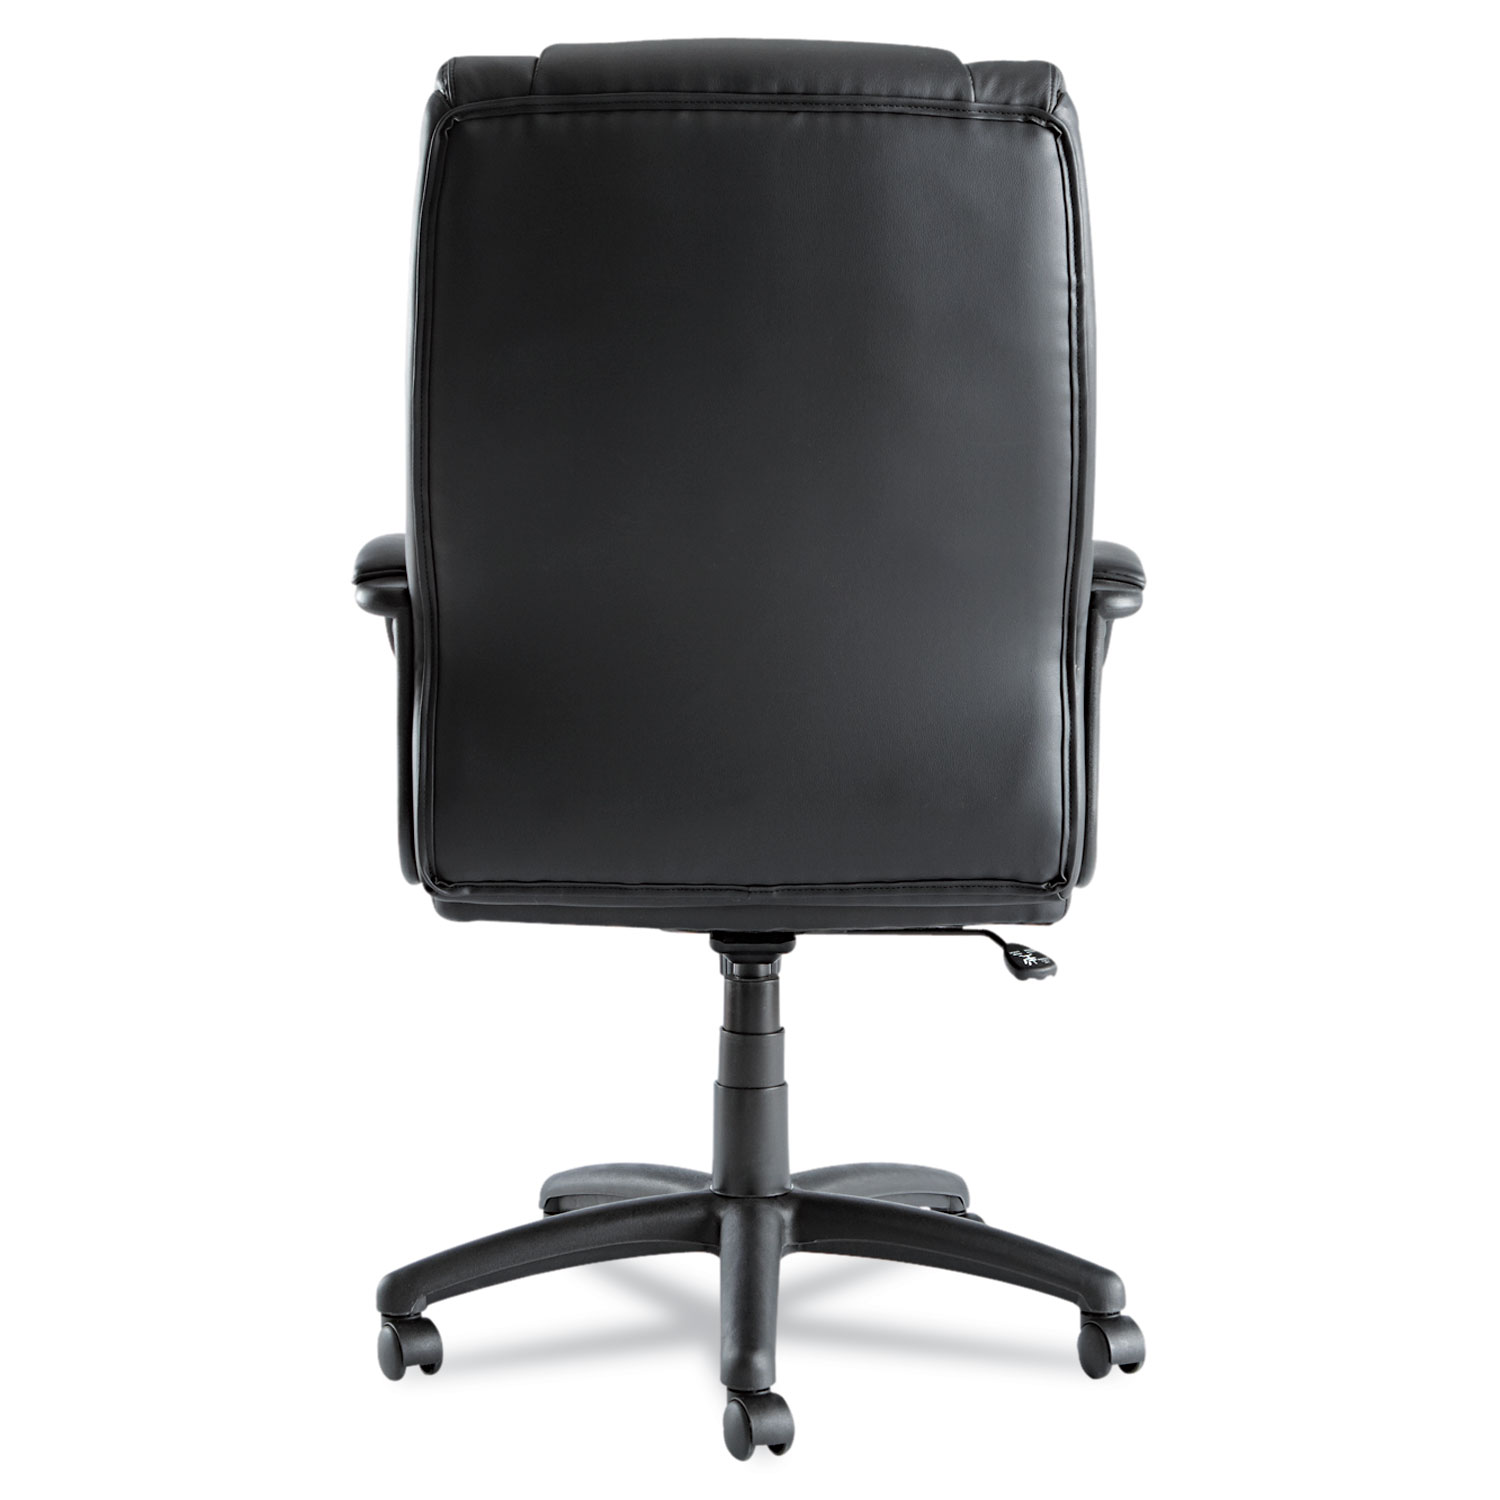 Alera Fraze Series High-Back Swivel/Tilt Chair Black Leather  sc 1 st  OnTimeSupplies.com & Alera Fraze Series High-Back Swivel/Tilt Chair by Alera ...